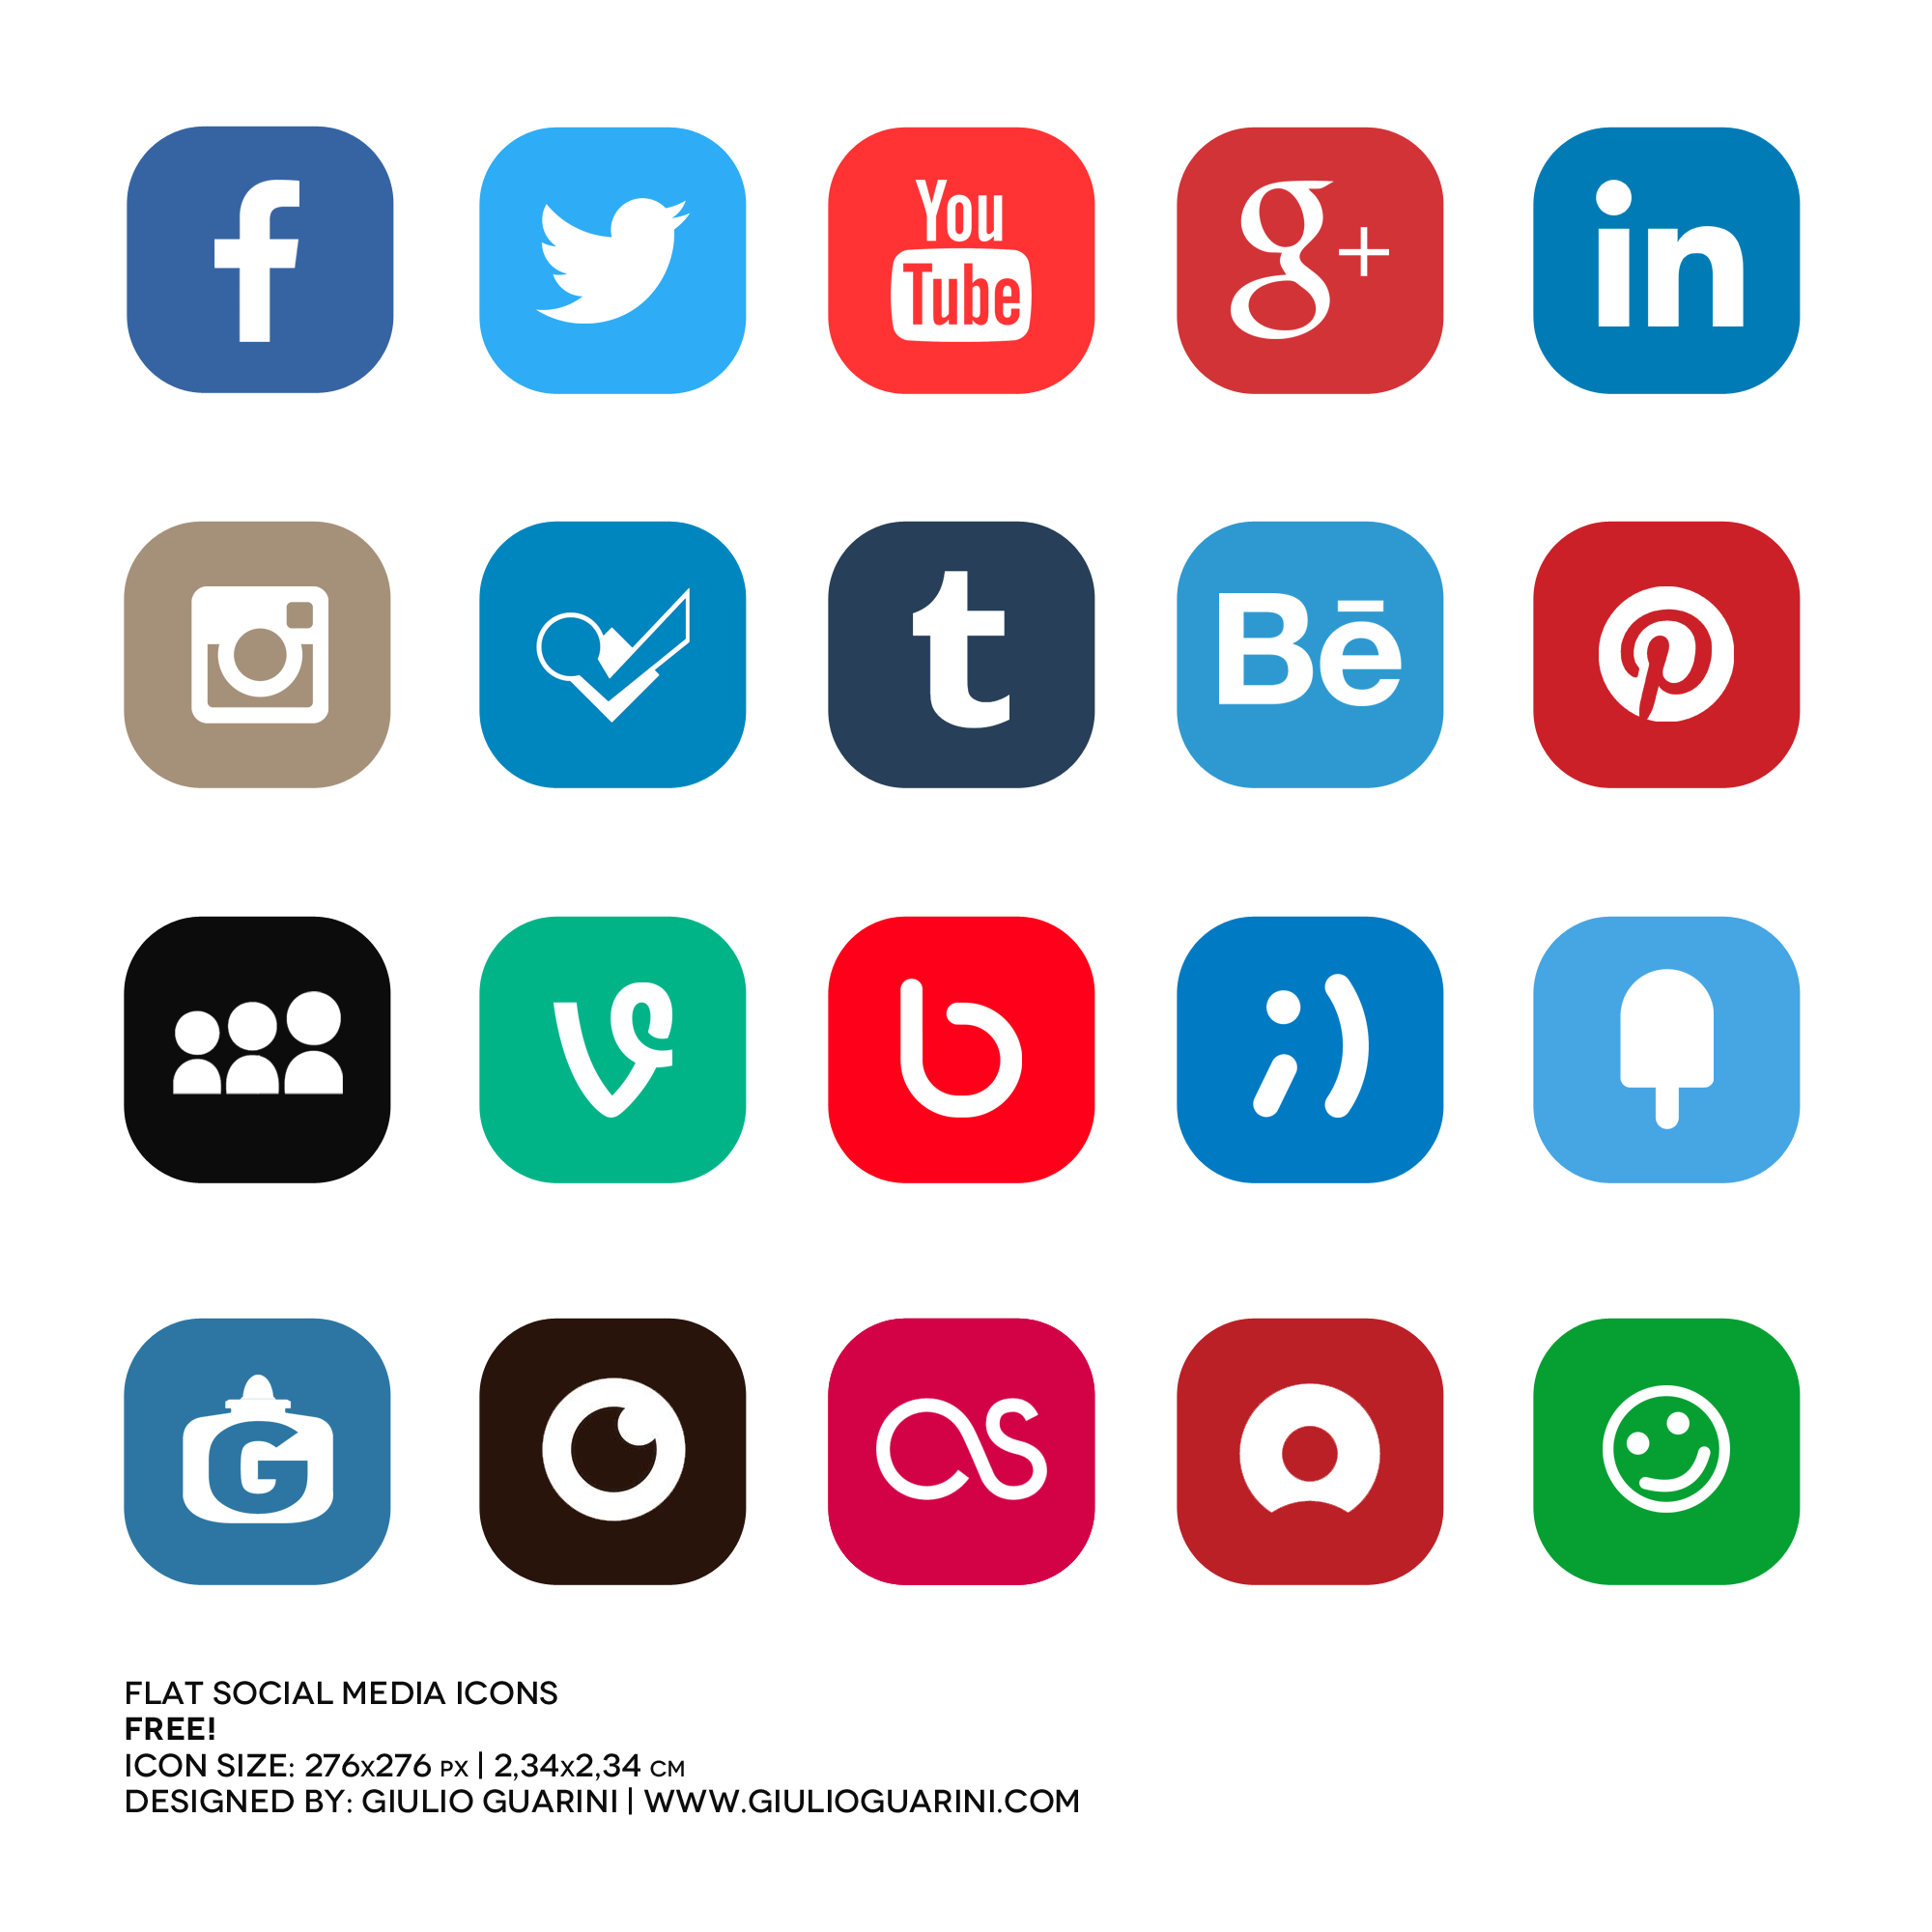 1000+ images about Social Media Icons on Pinterest